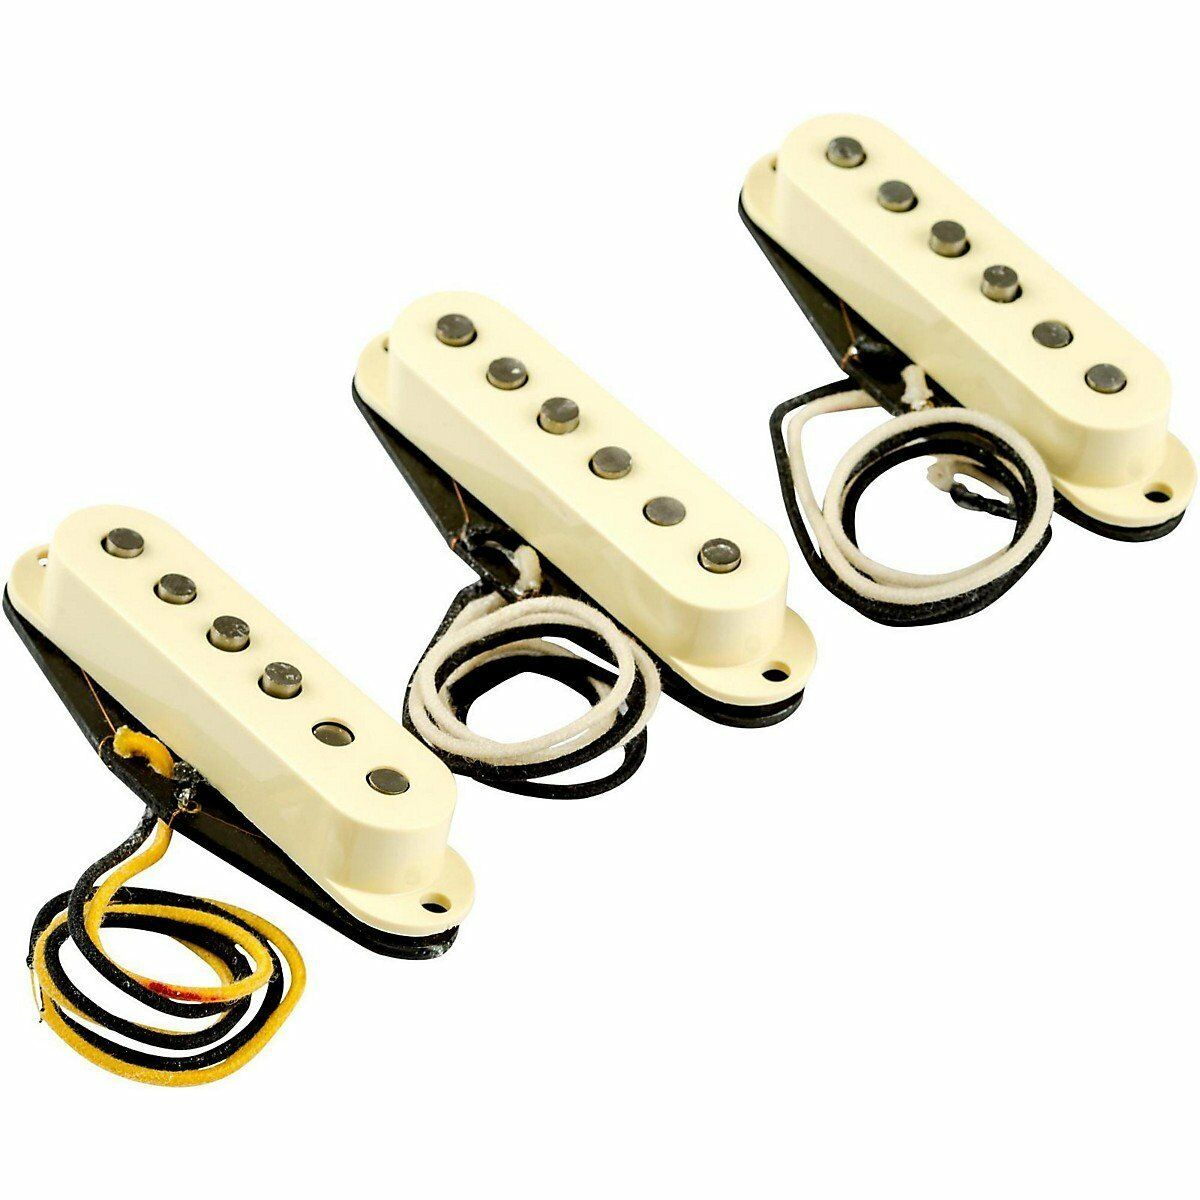 Original Fender Eric Johnson Stratocaster   Strat Guitar Pickup Set, 099-2248-000